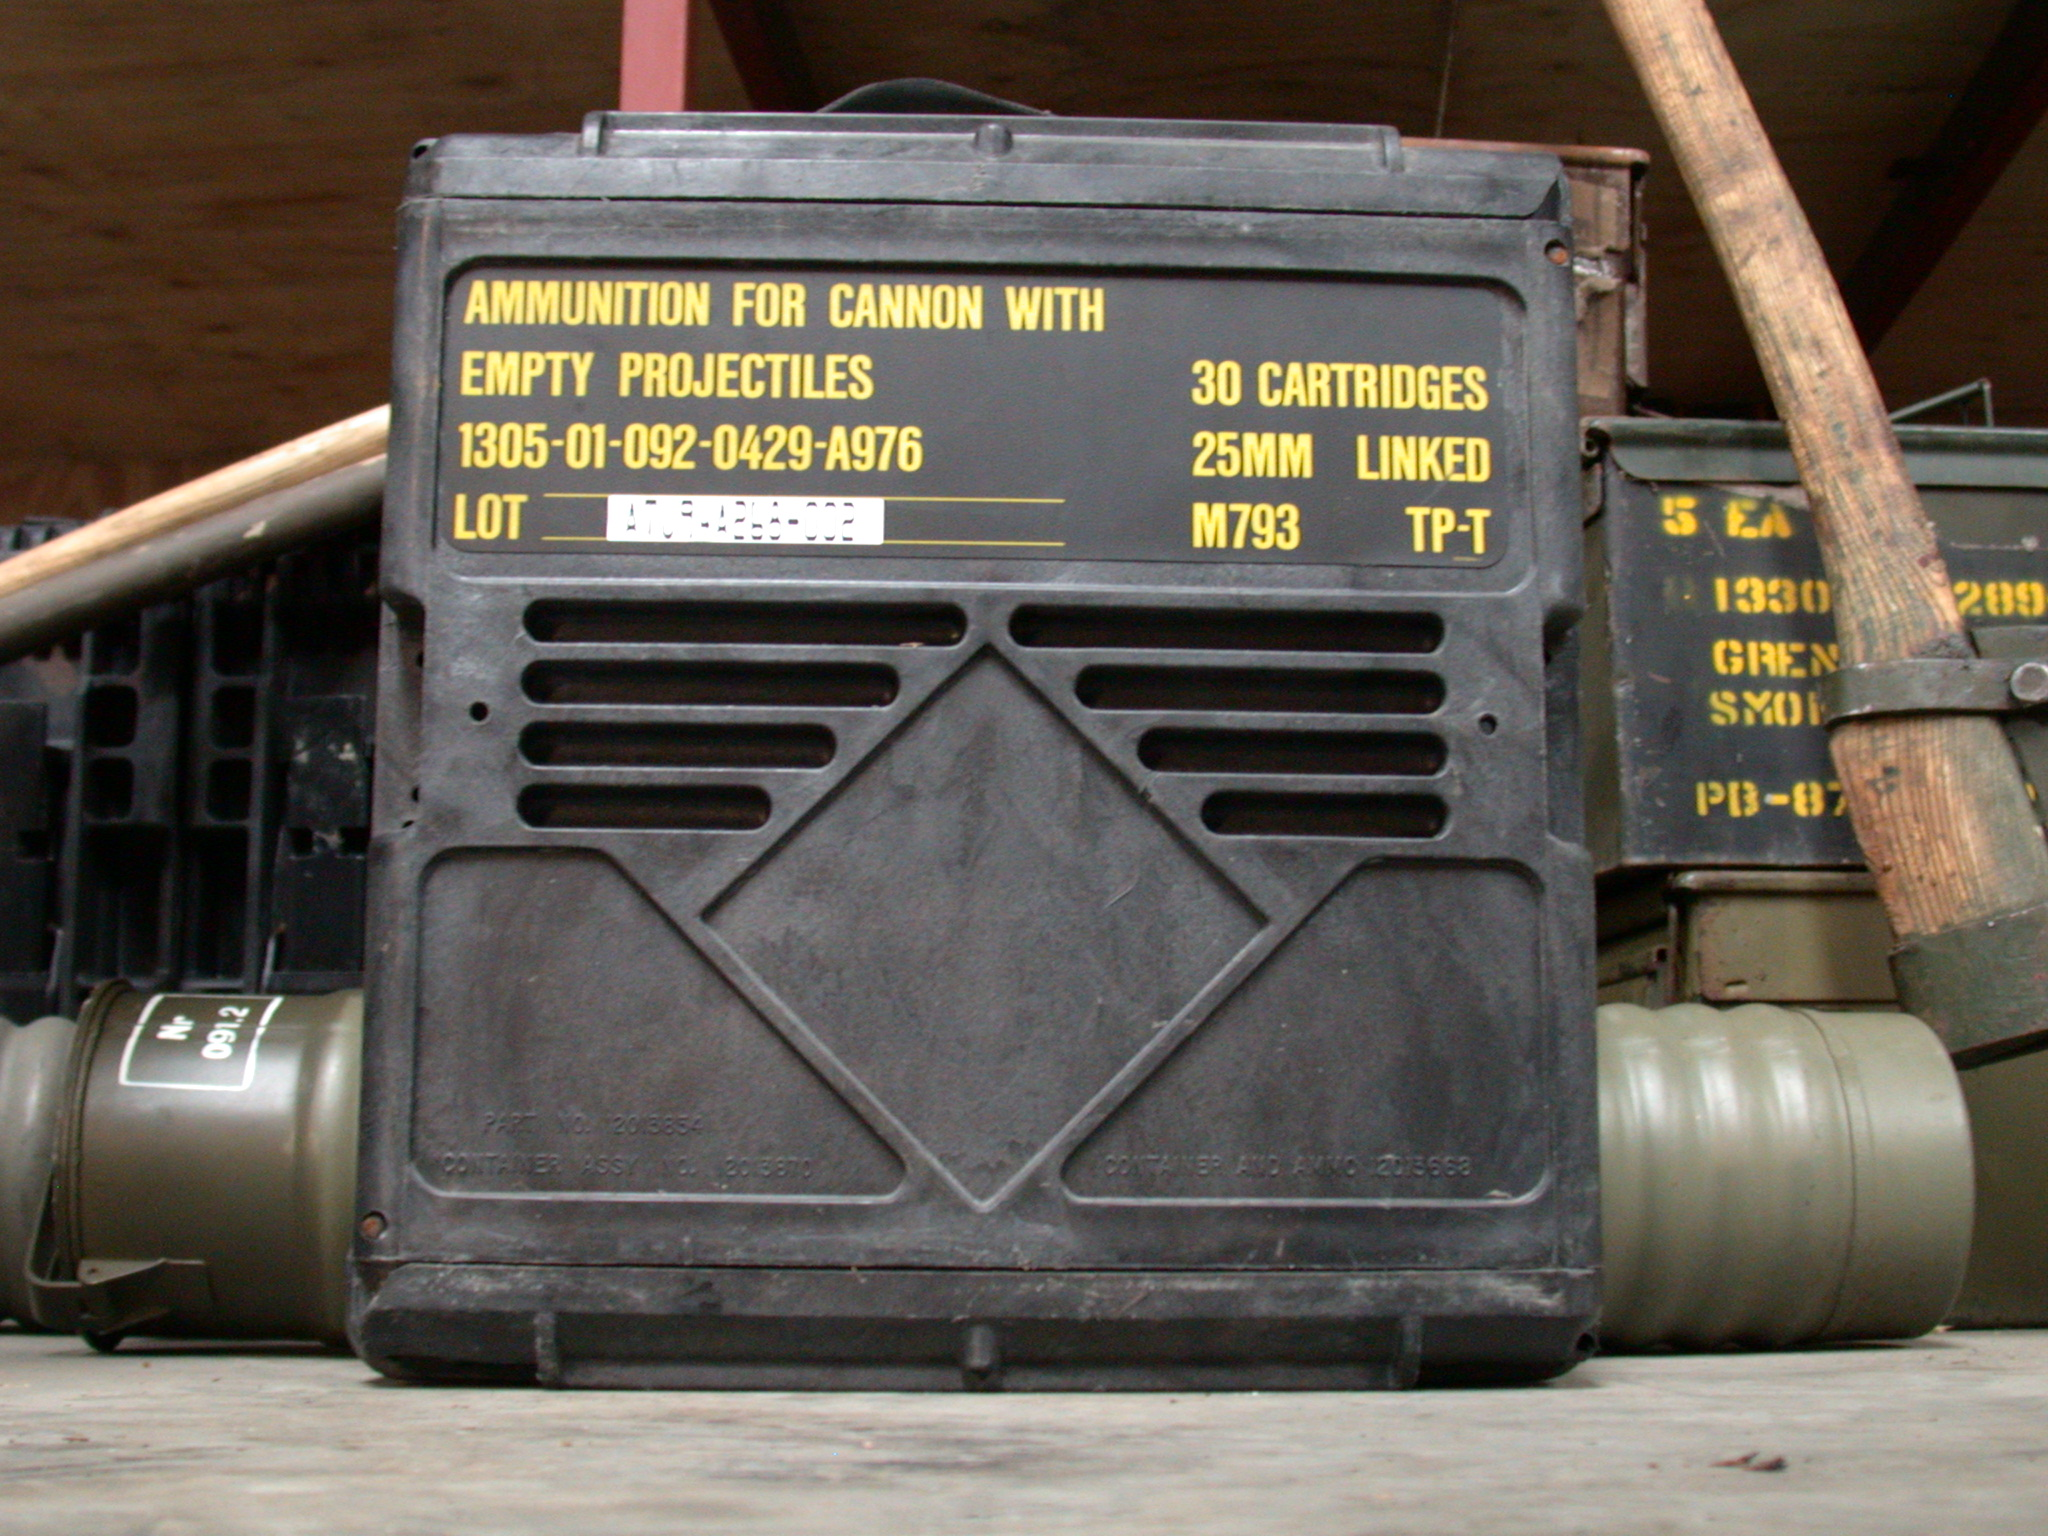 ammunition crate for cannon with empty projectiles black plastic yellow letters royalty-free